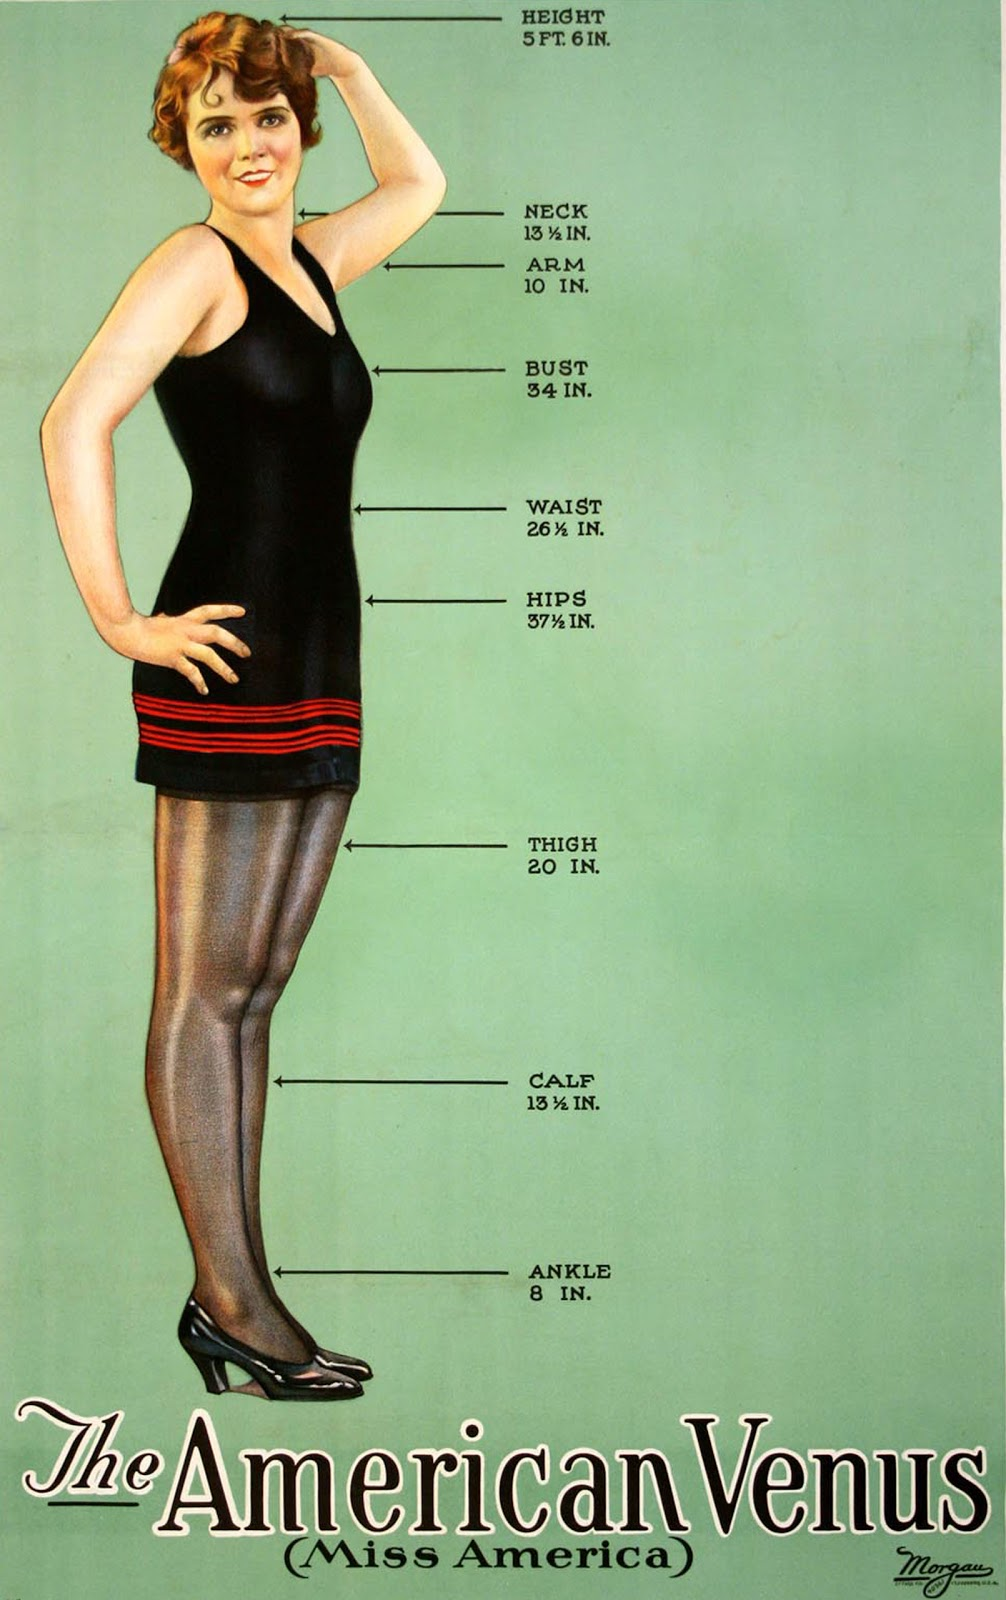 Ideal measurements for American women from the 1920s ...